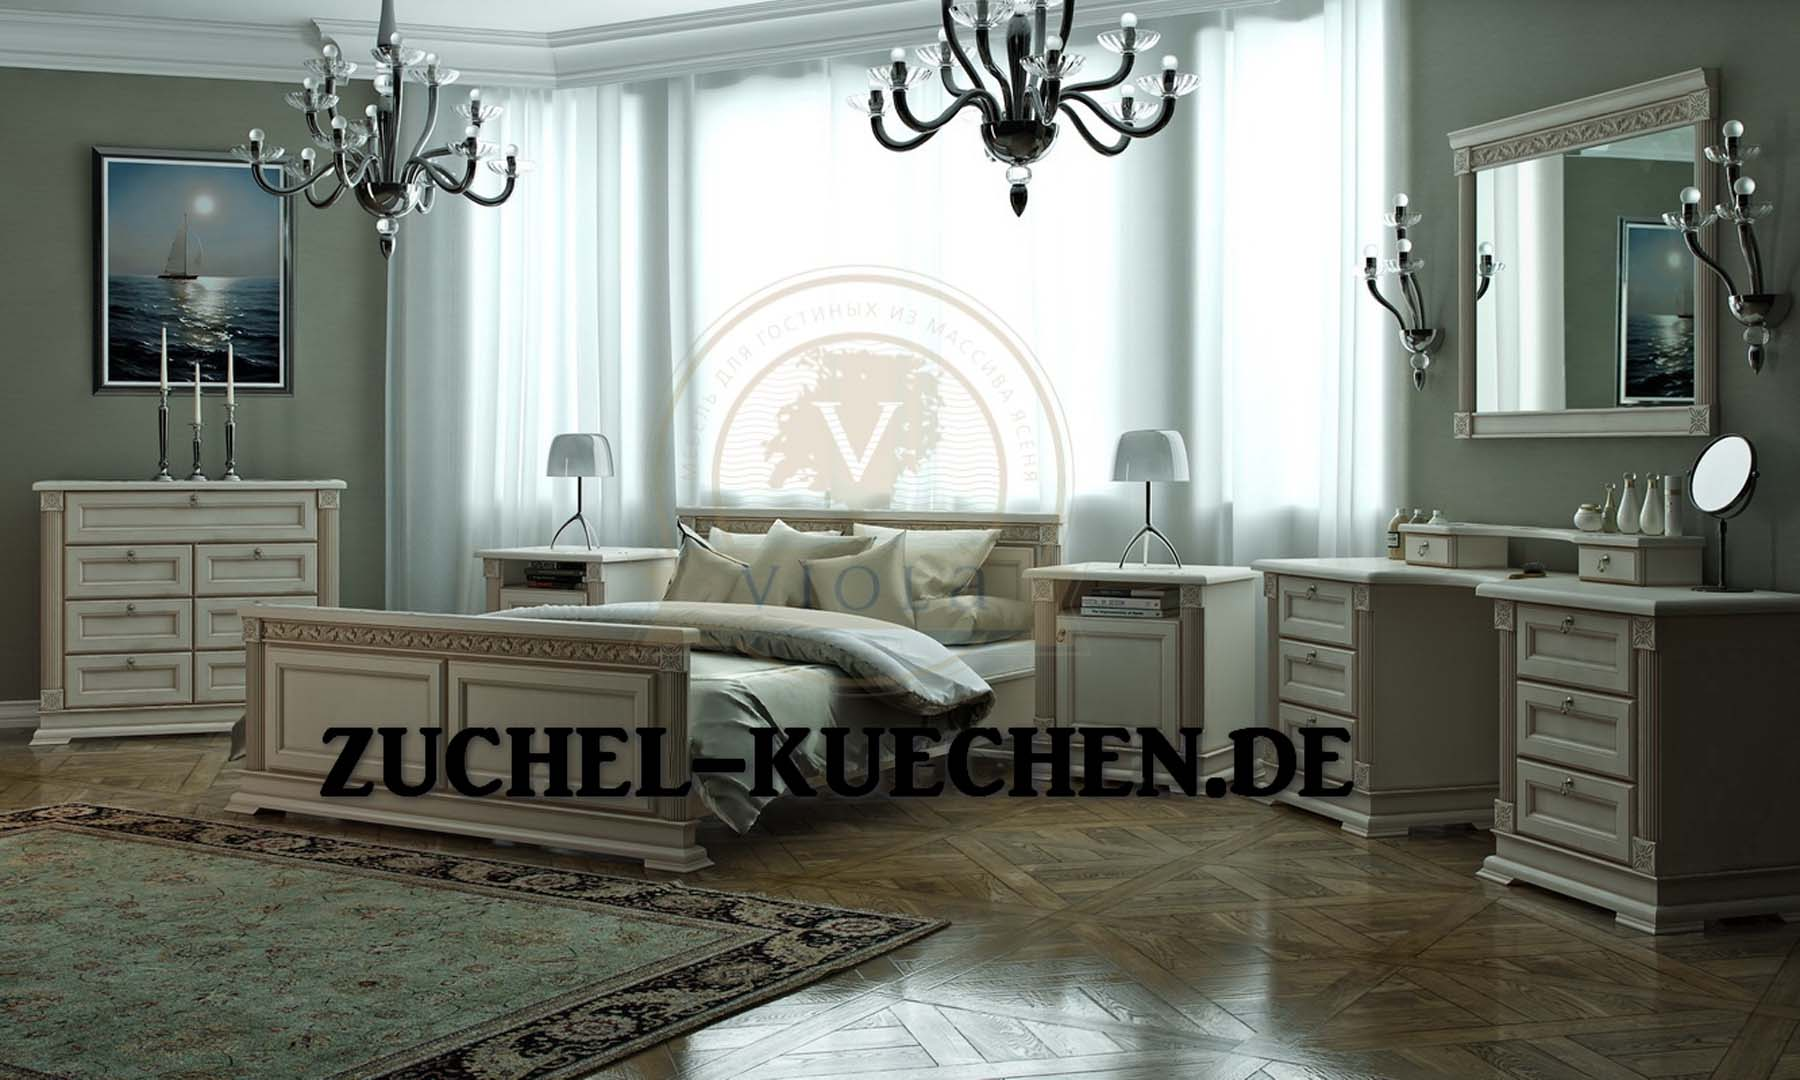 schlaf zimmer wie kann ich einen begehbaren in mein. Black Bedroom Furniture Sets. Home Design Ideas